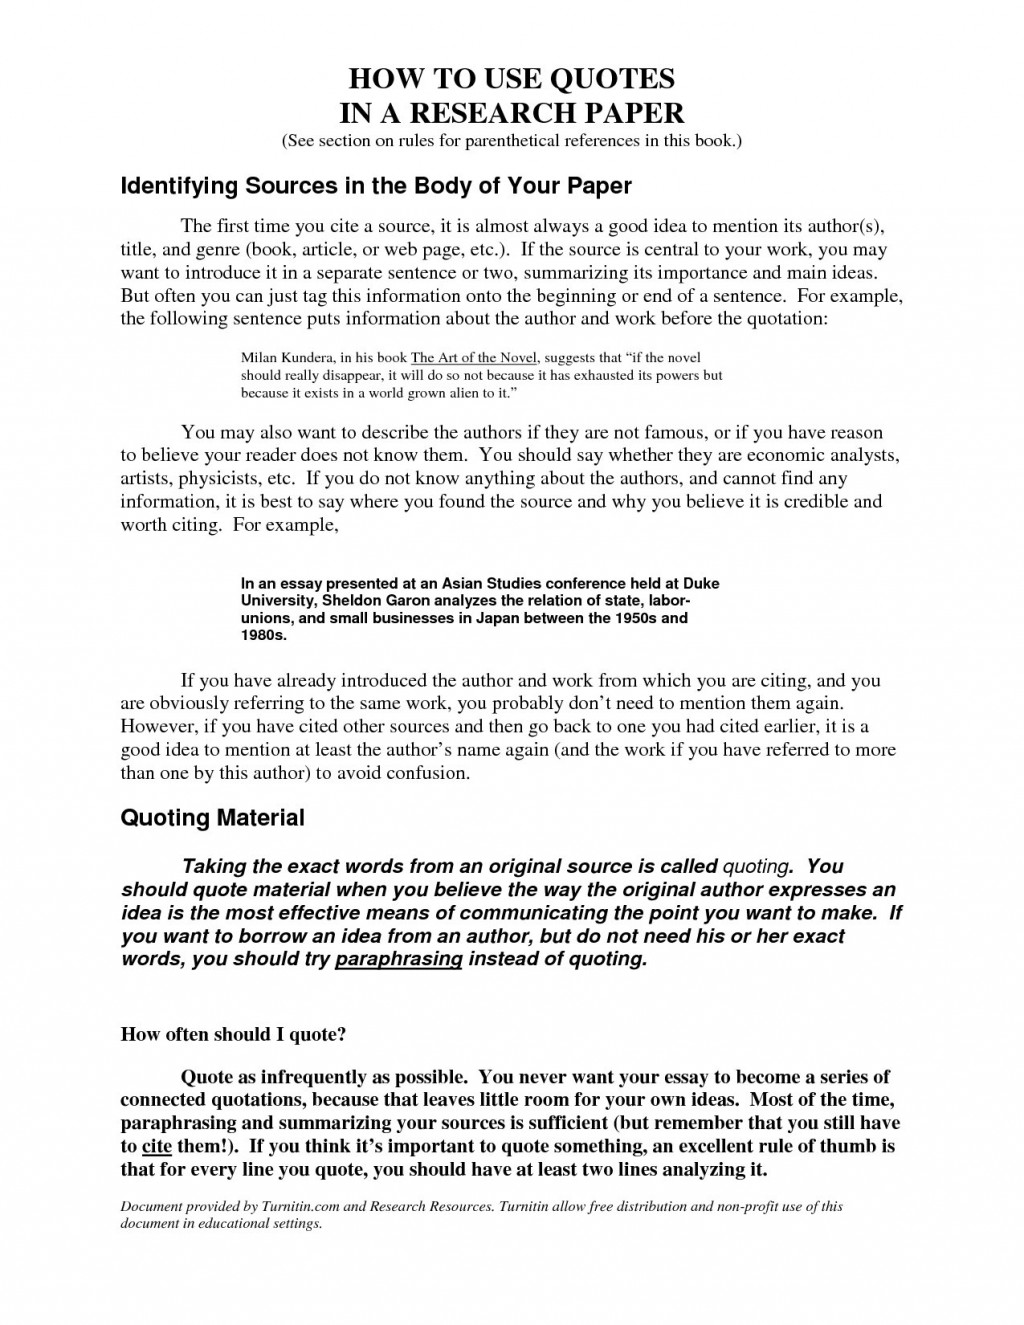 001 Quotes In Essay Format How To Cite Explanatory Quote Beginning With Sample Starting Example Using Frightening Essays Apa Mla Paper Large